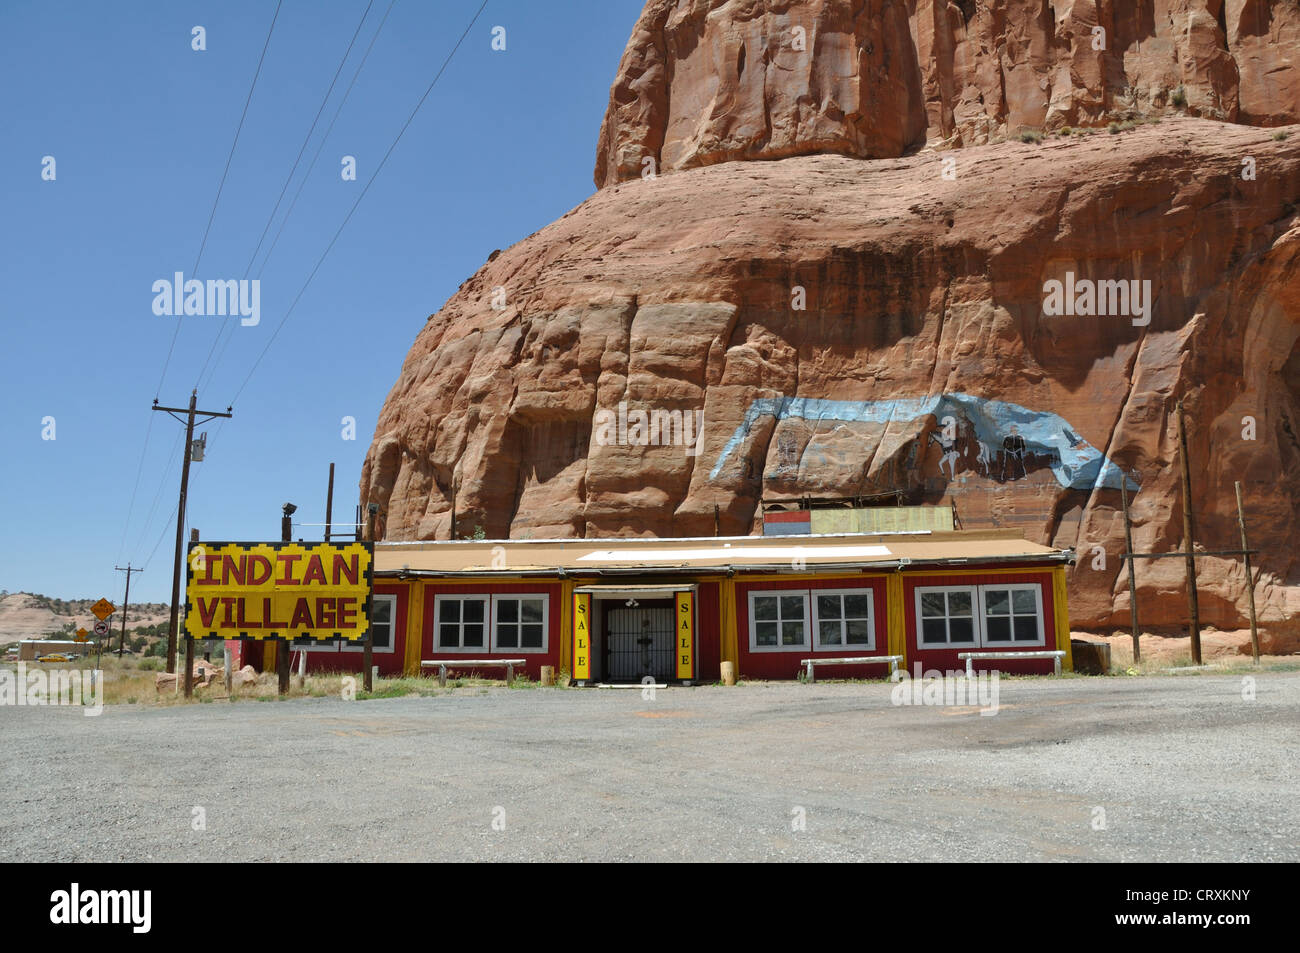 Old Route 66 >> Indian Village Trading Post Along Old Route 66 On Arizona And New